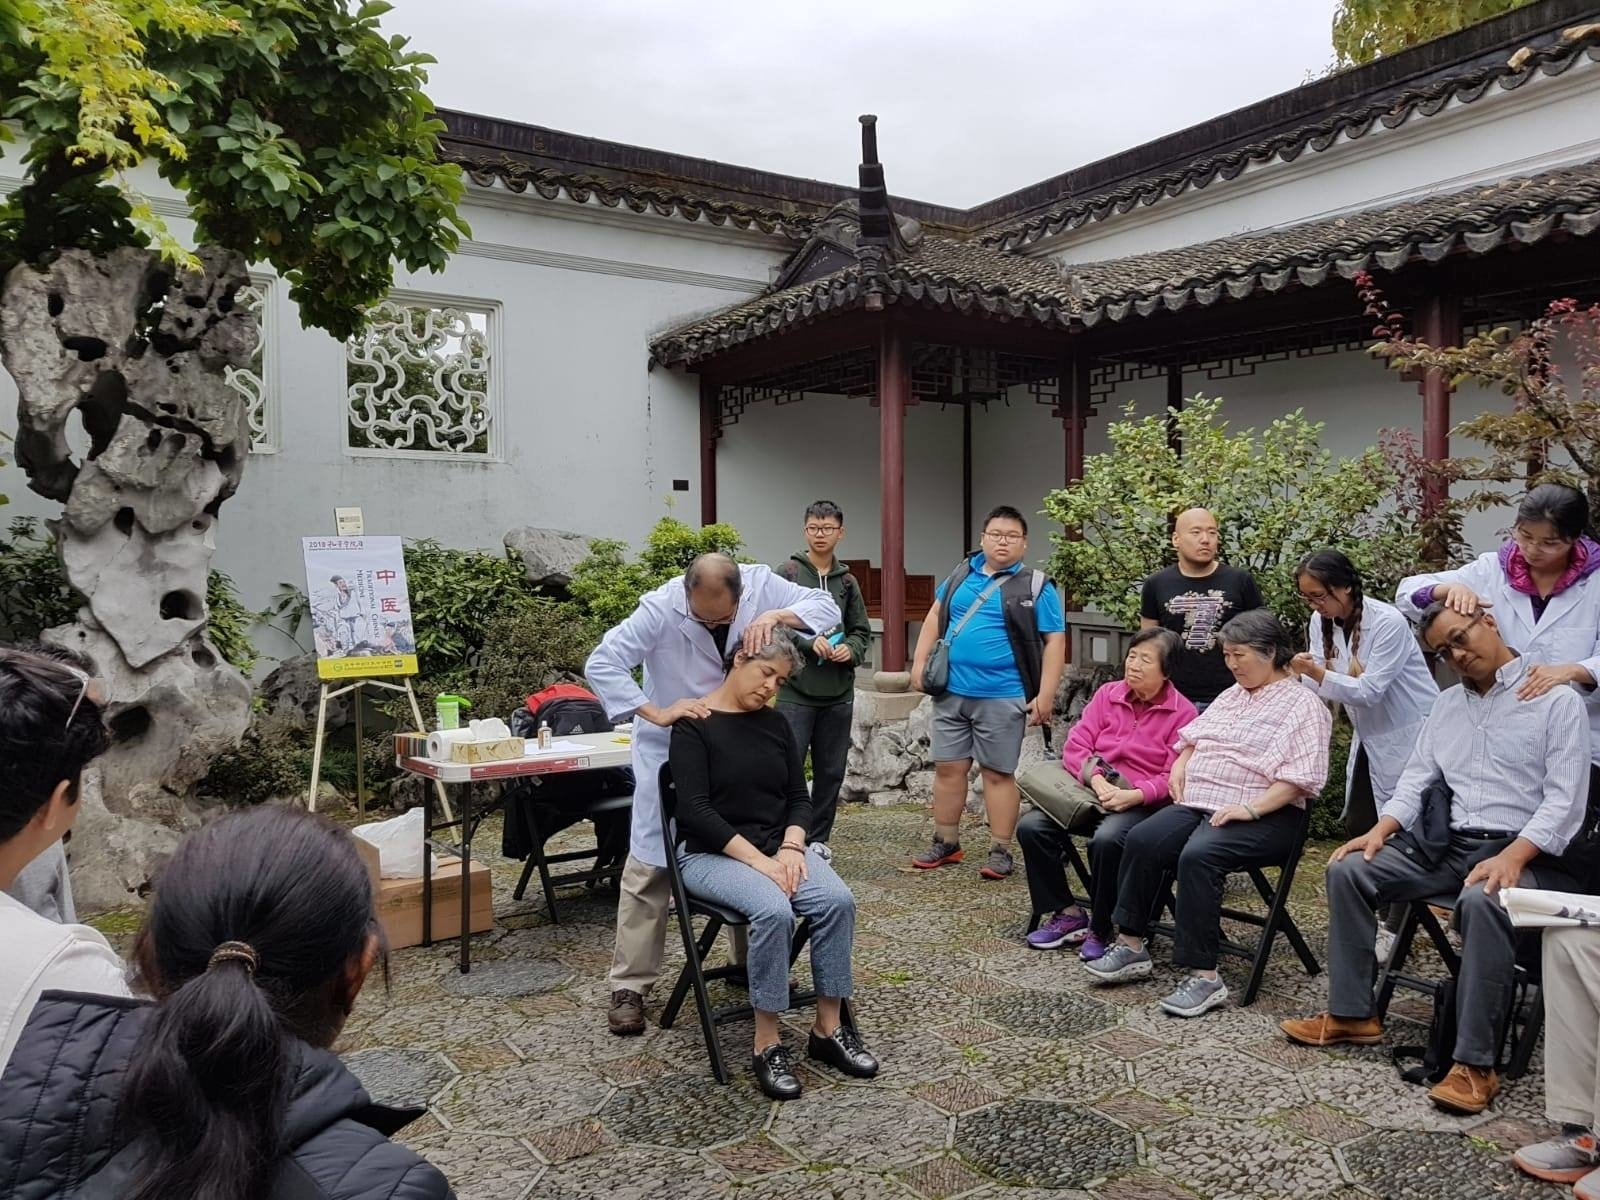 Tzu Chi International College of Traditional Chinese Medicine of Vancouver in Vancouver